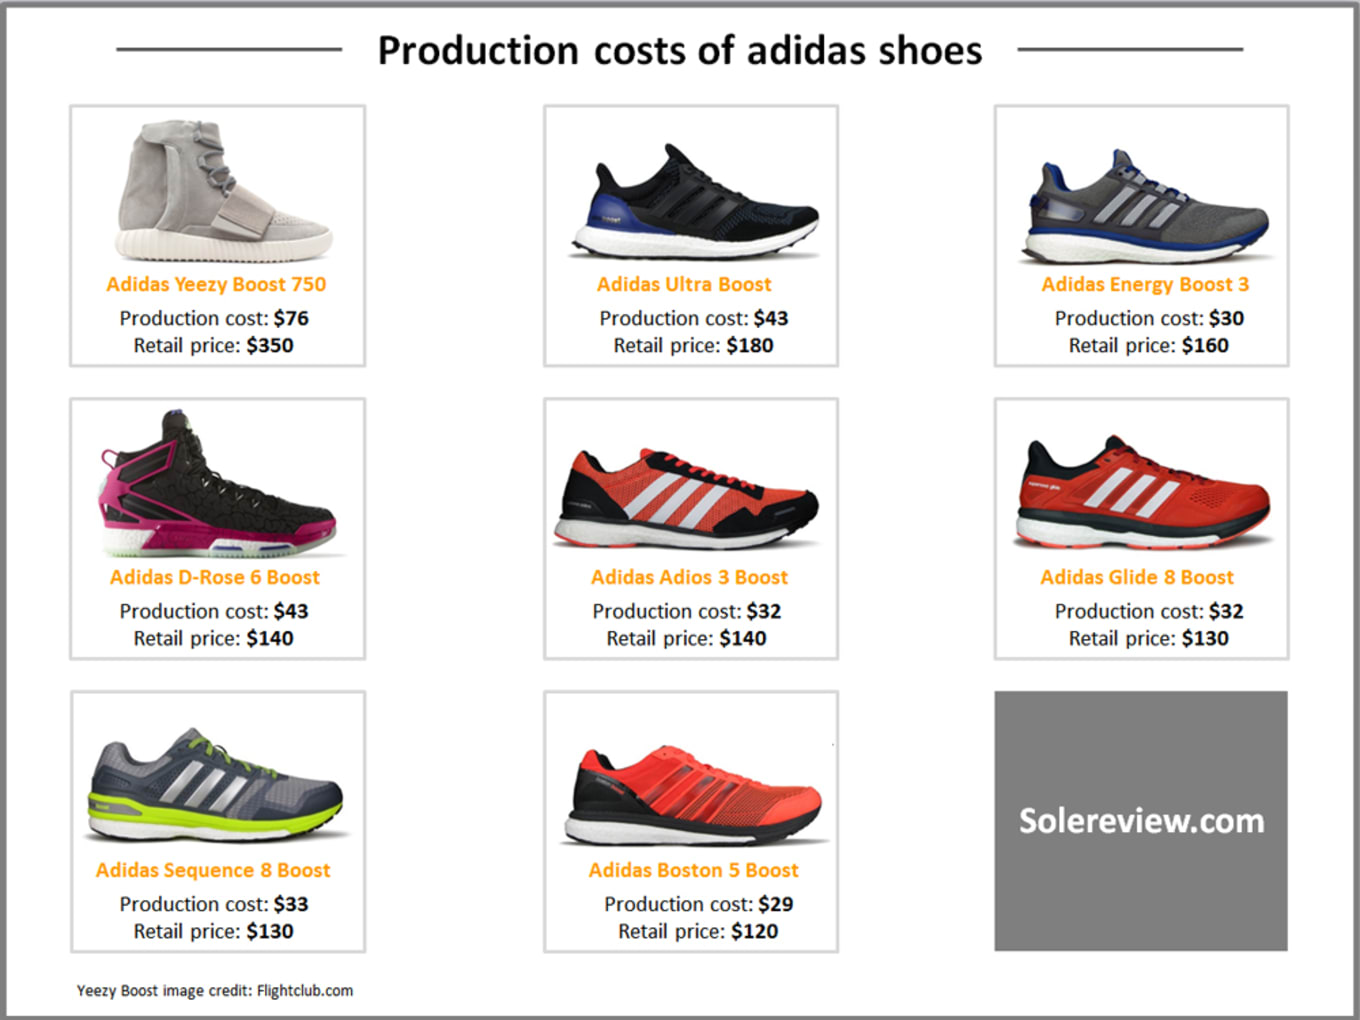 fb4f4367efef8 Actual Production Cost of the adidas Yeezy